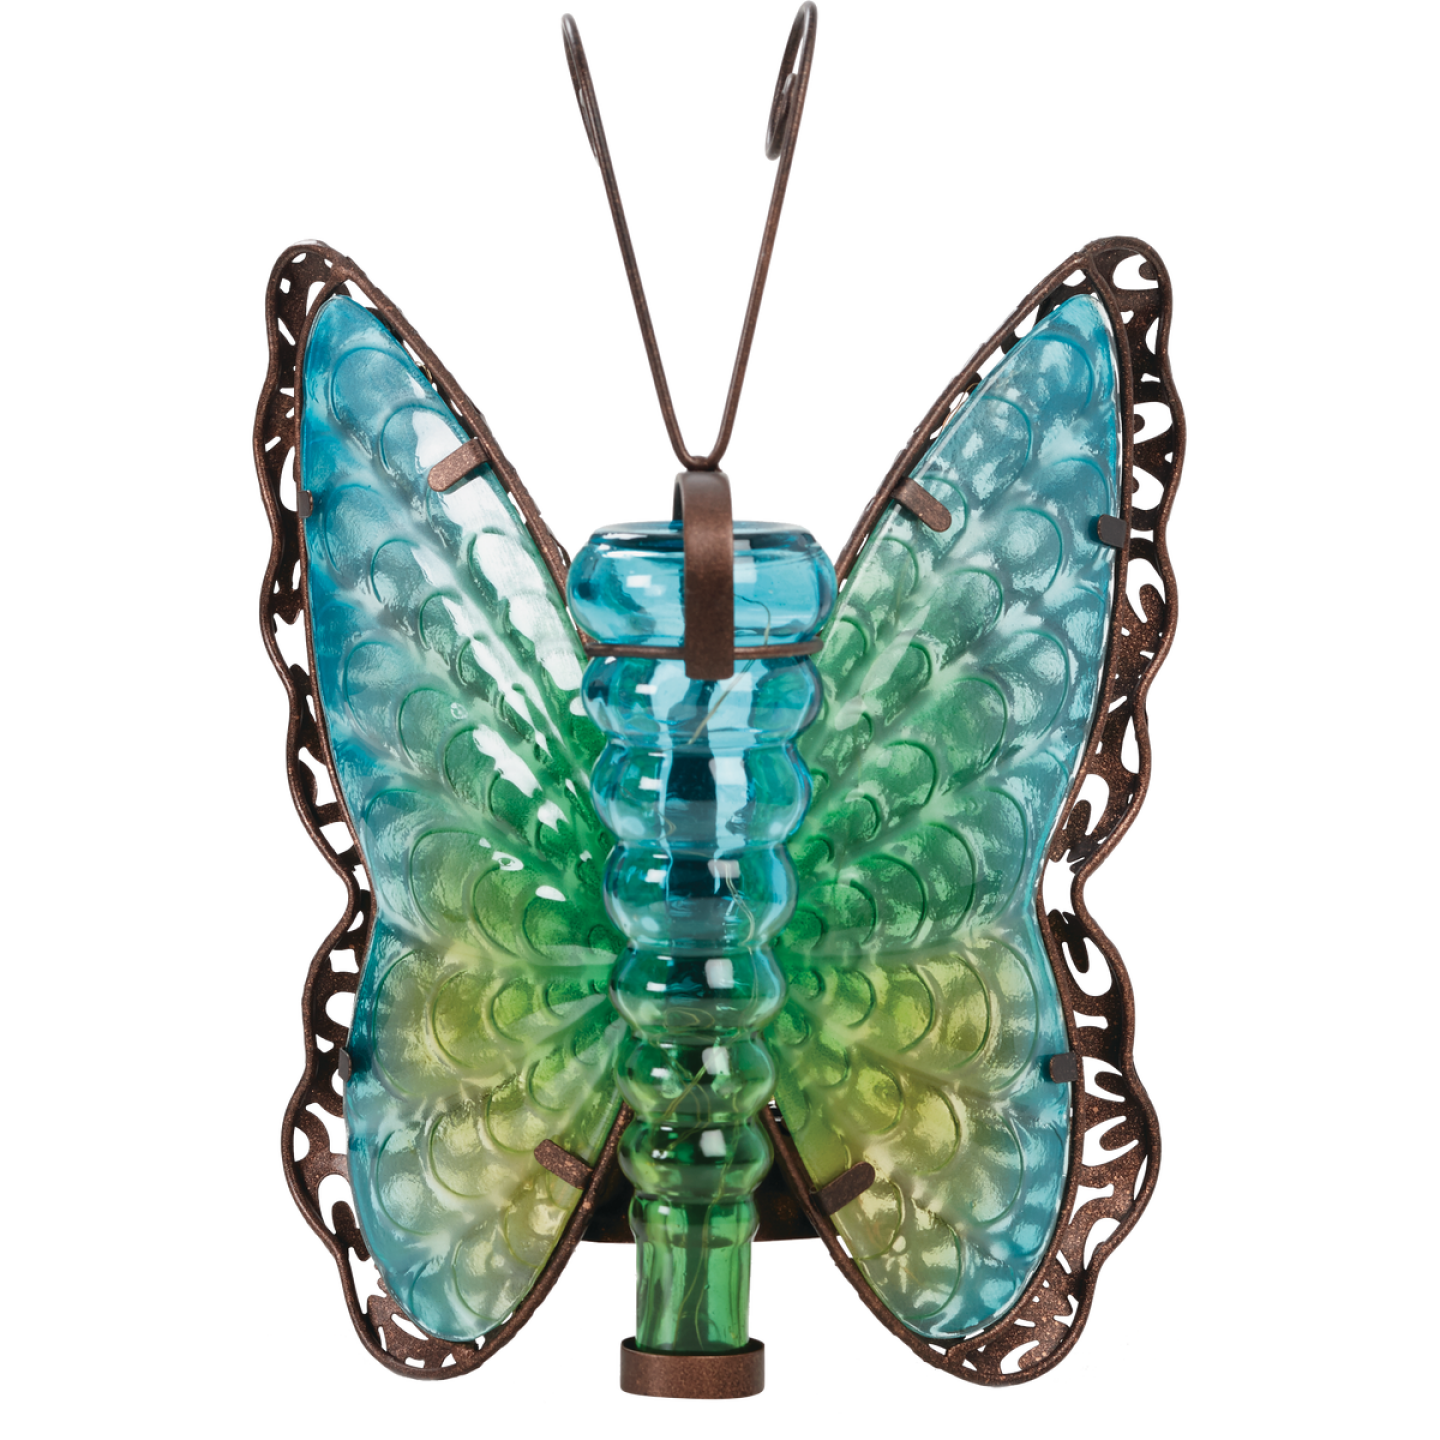 Outdoor Expressions 8 In. W. x 11.25 In. H. x 7 In. D. Butterfly Solar Light Image 8